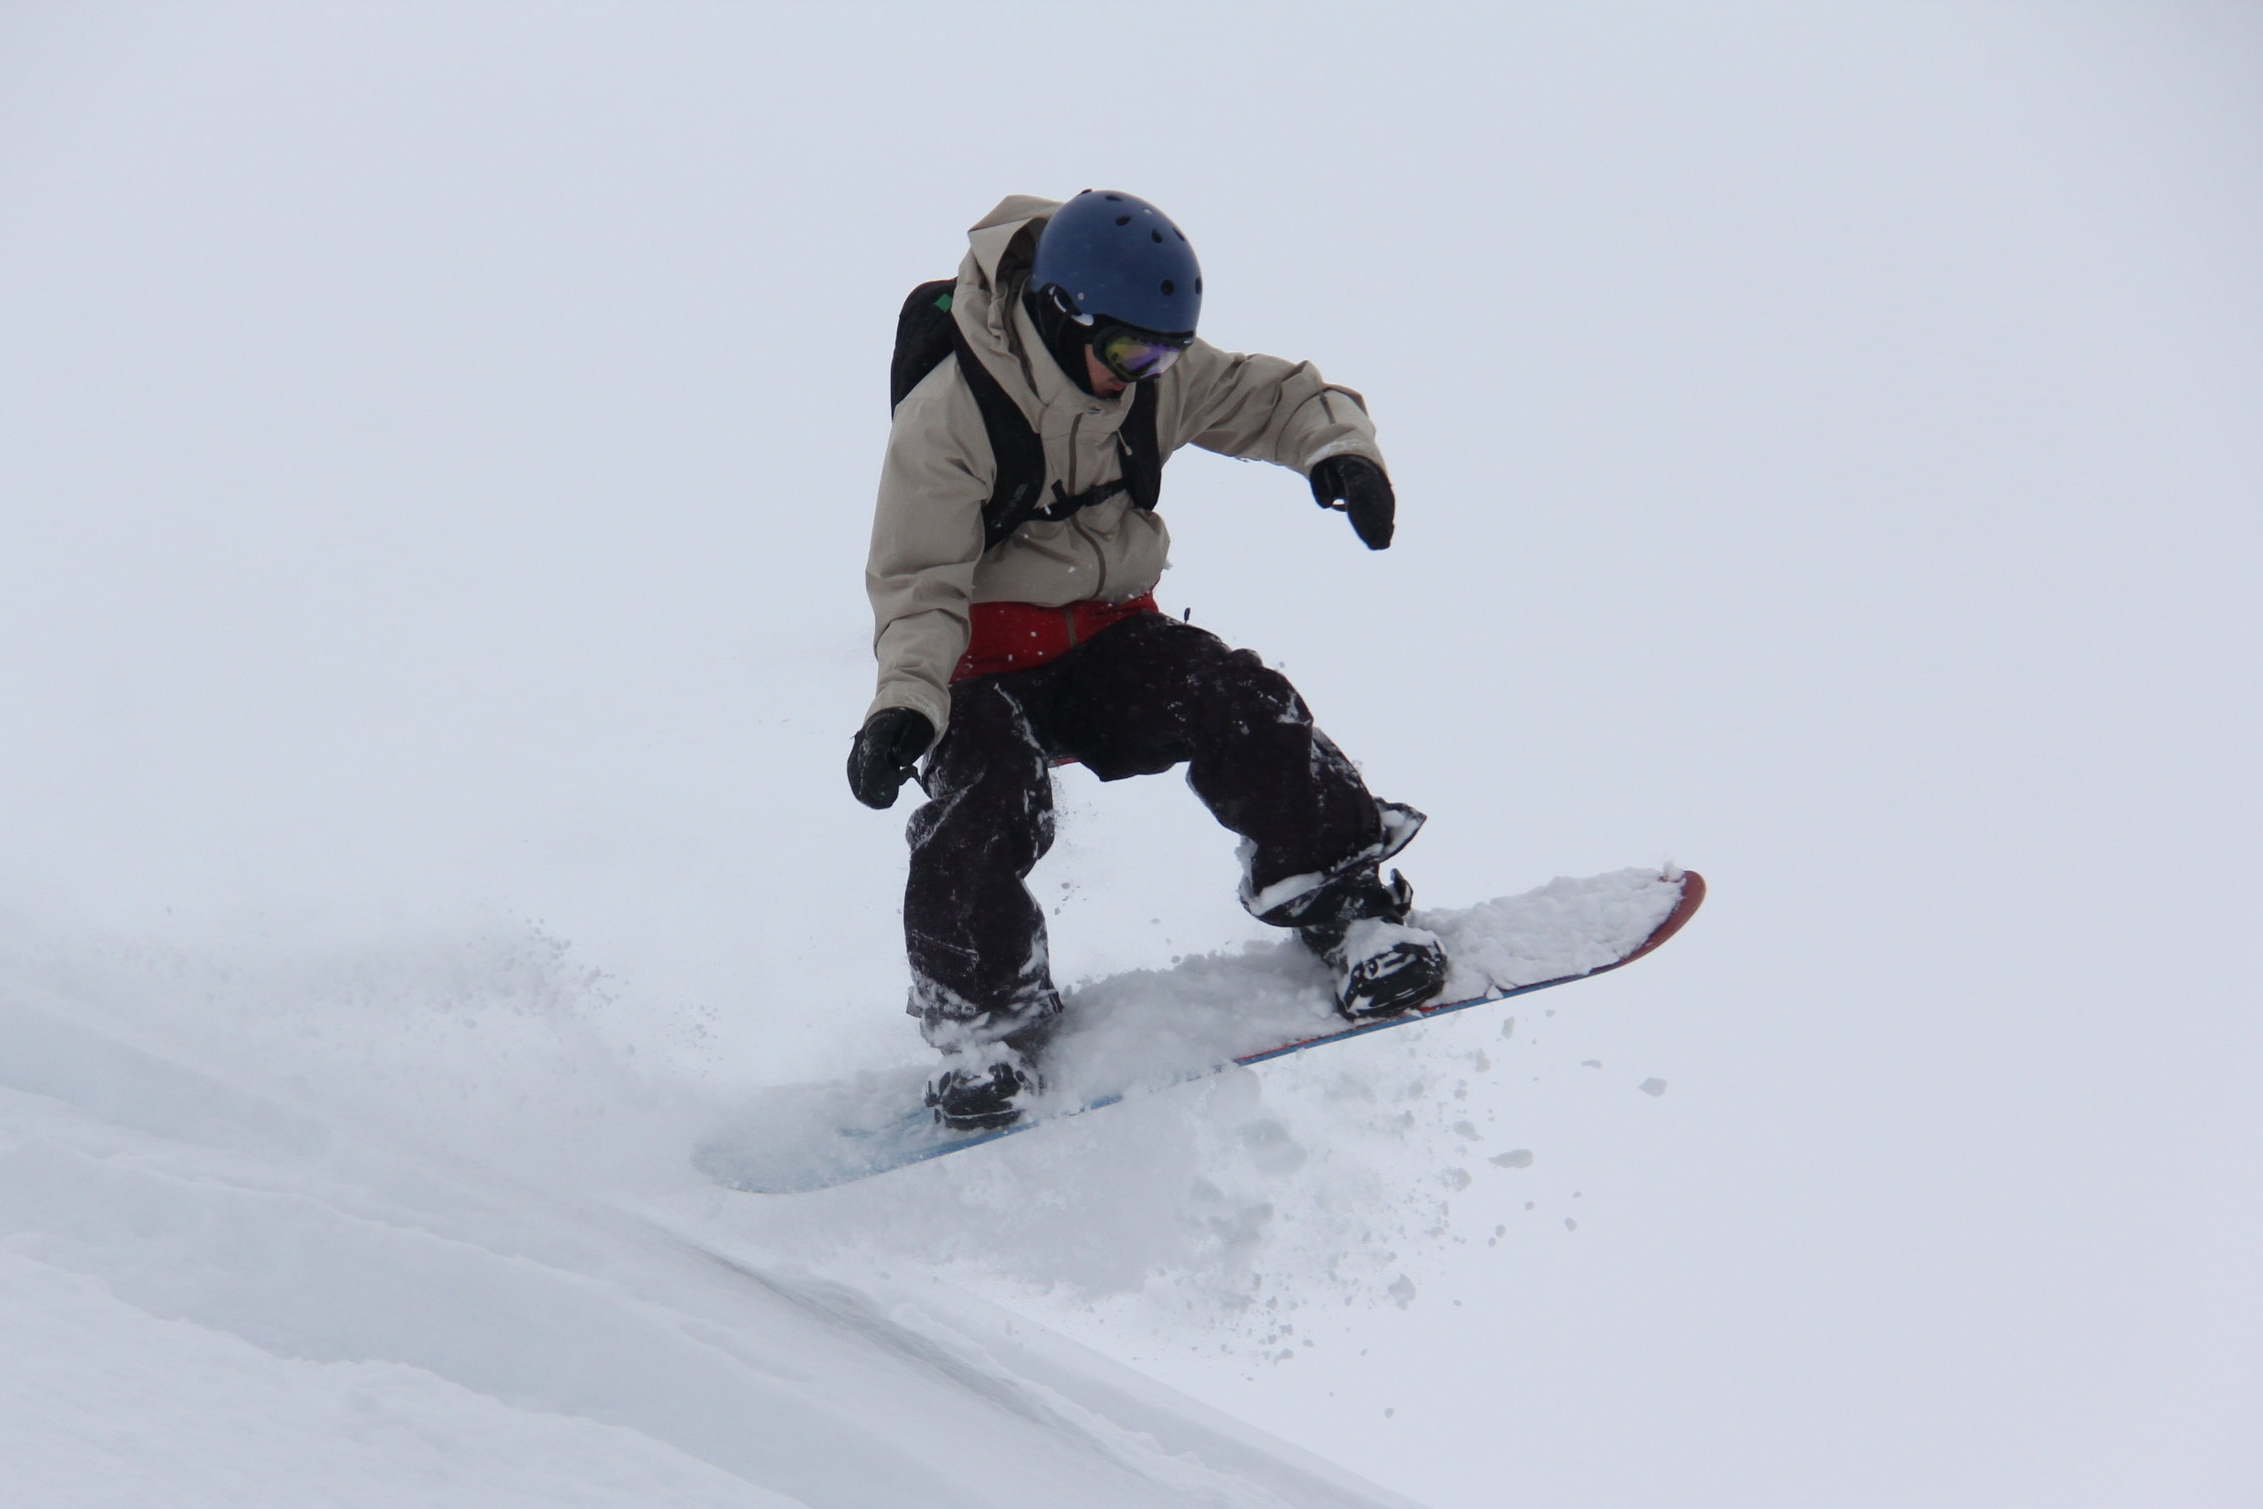 Yes this is our son the cancer survivor heli-boarding in Canada!